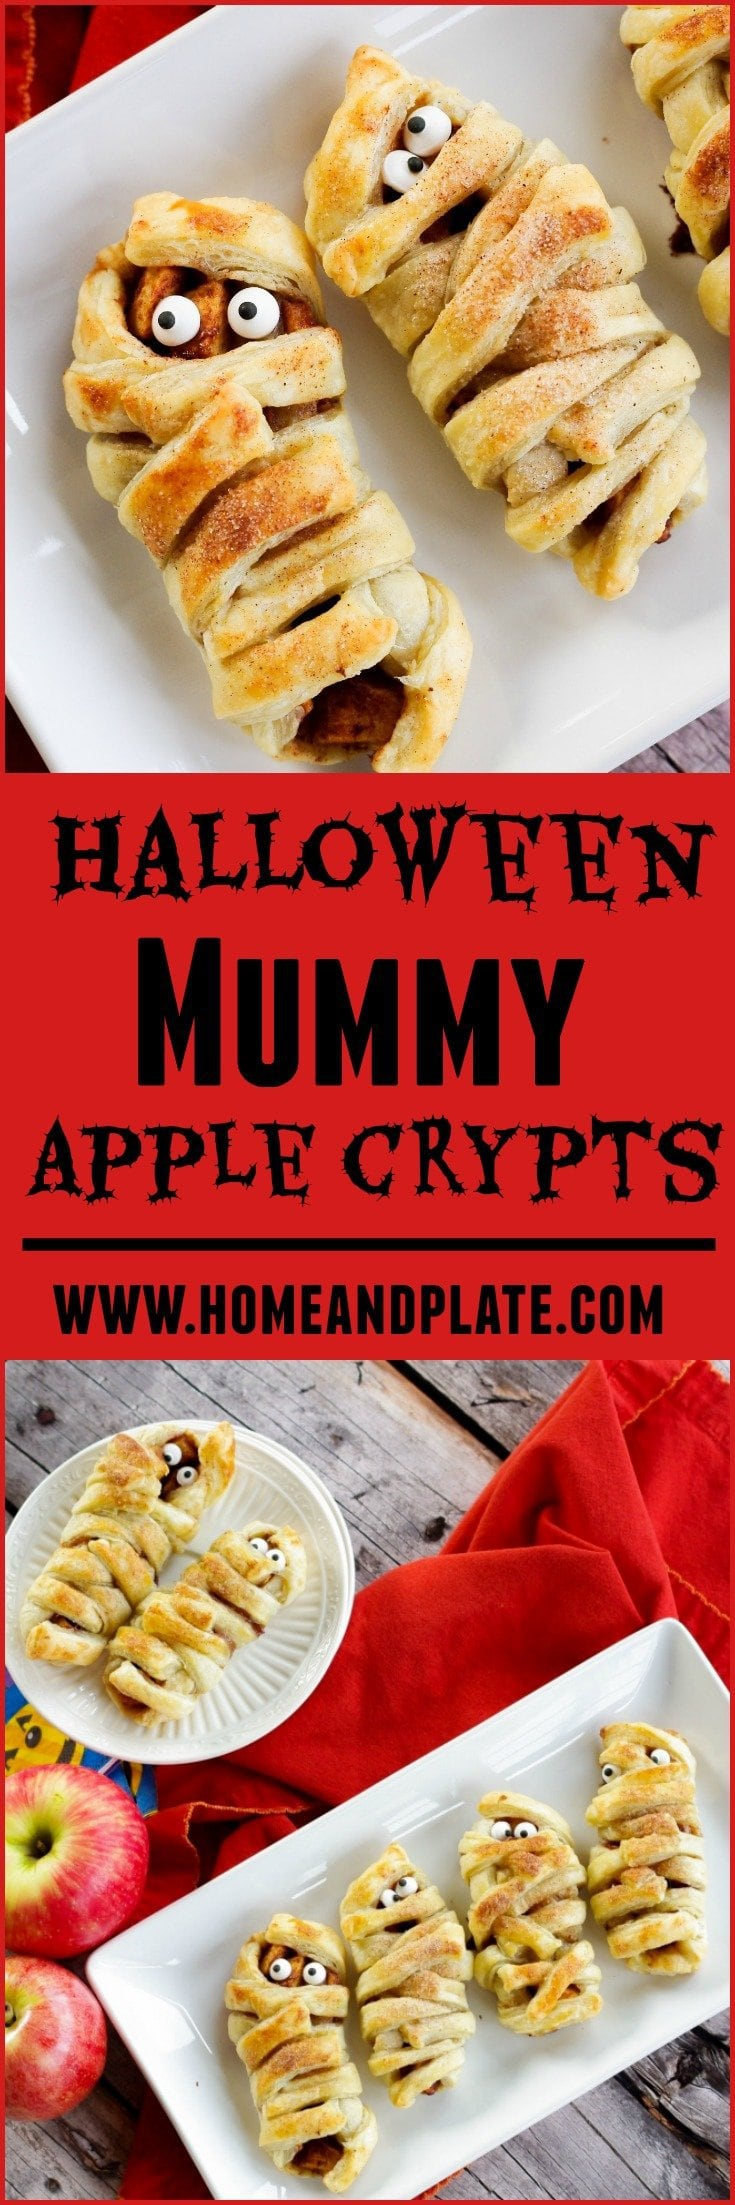 Halloween Mummy Apple Crypts | www.homeandplate.com | Turn a simple homemade apple pastry into a fun Halloween treat that